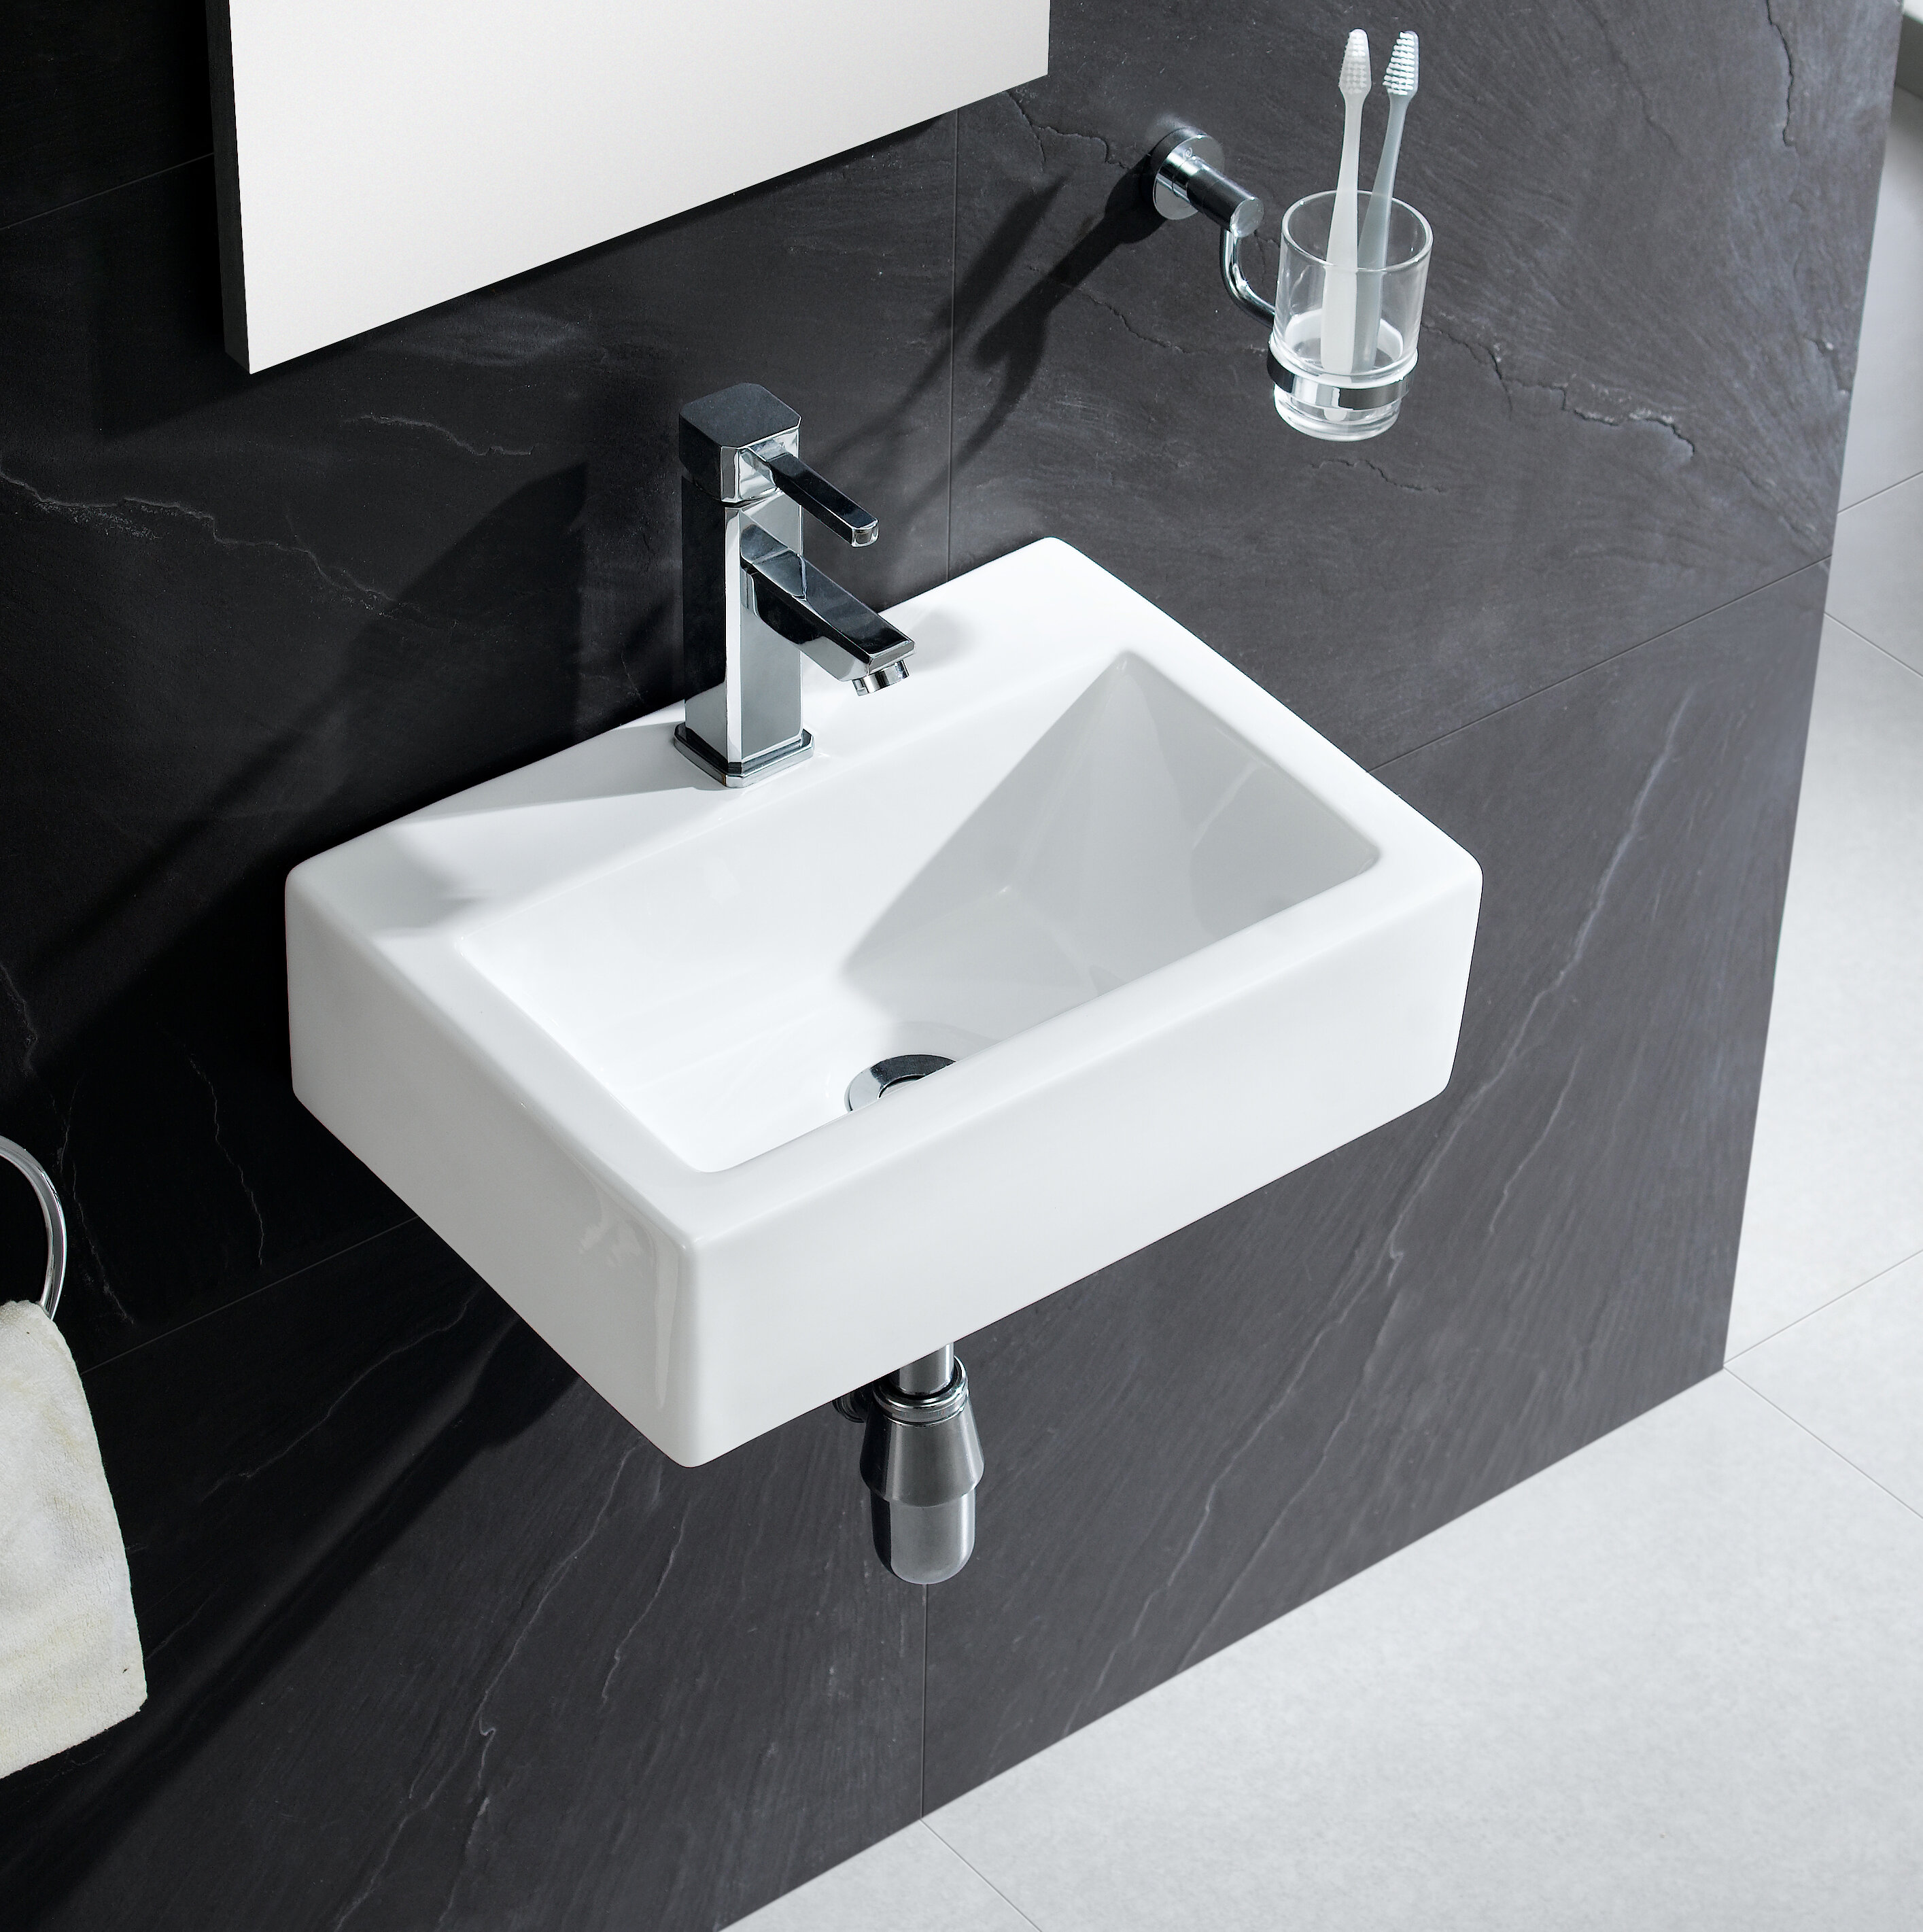 Fine Fixtures Modern Ceramic 17 Wall Mount Bathroom Sink Reviews Wayfair